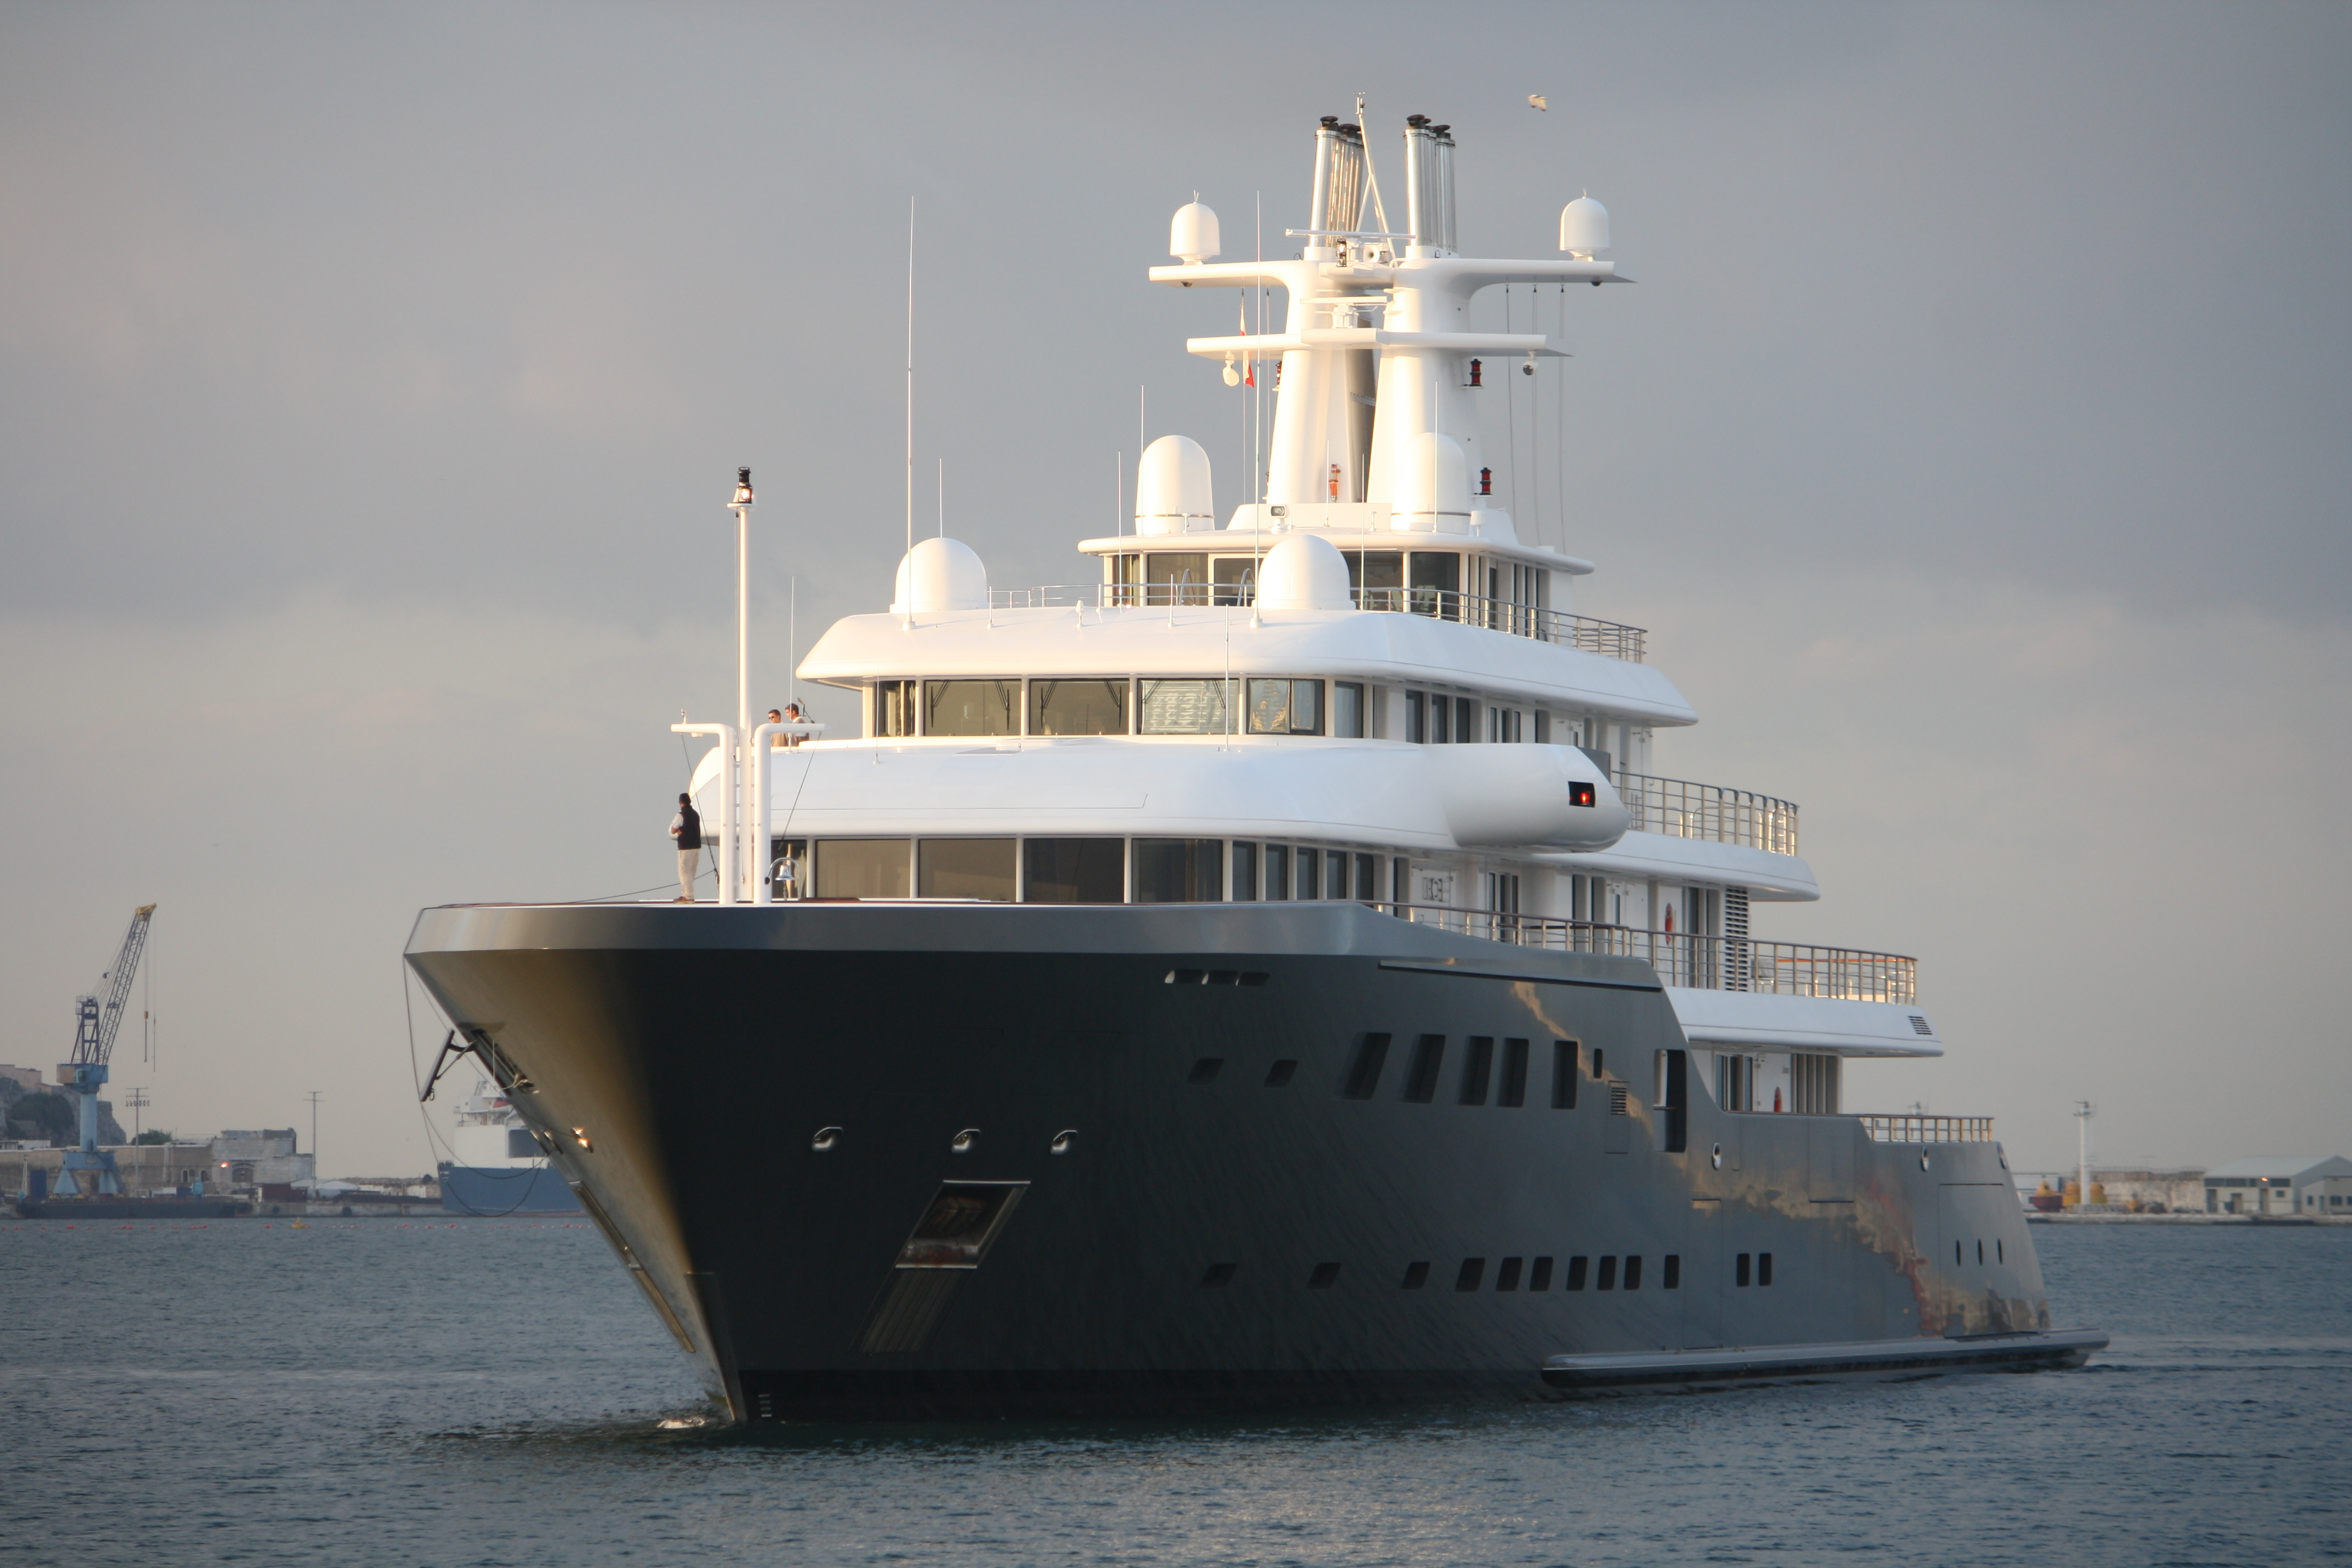 Superyacht ICE Superyachts News Luxury Yachts Charter Amp Yachts For Sale